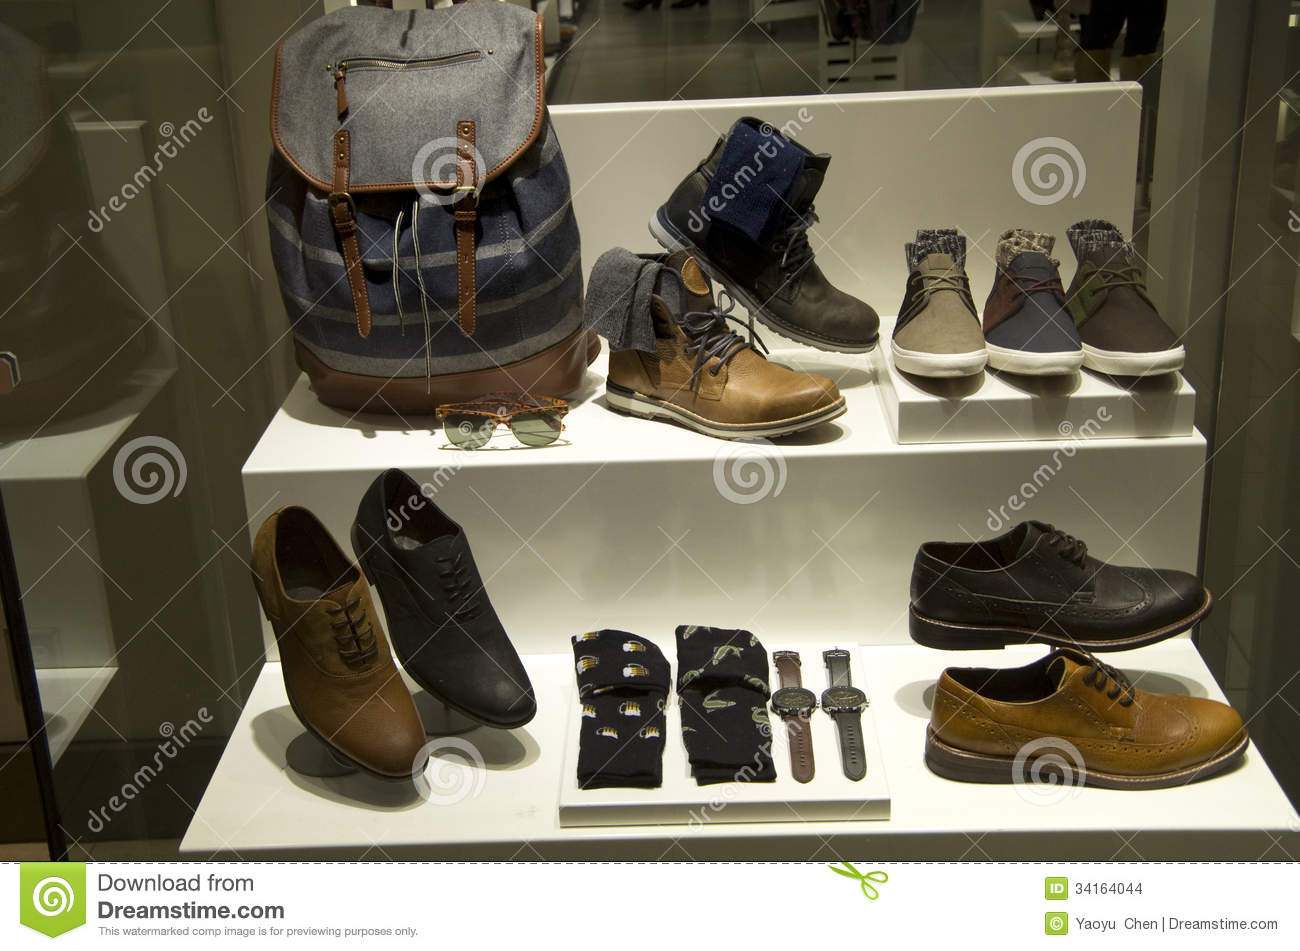 the business plan for selling shoes B business description  marketing plan  swot analysis  financial plan  management plan  support material the shoe retail business is a competitive field and i believe there is potential for growth those who have special needs and those who are health conscience.